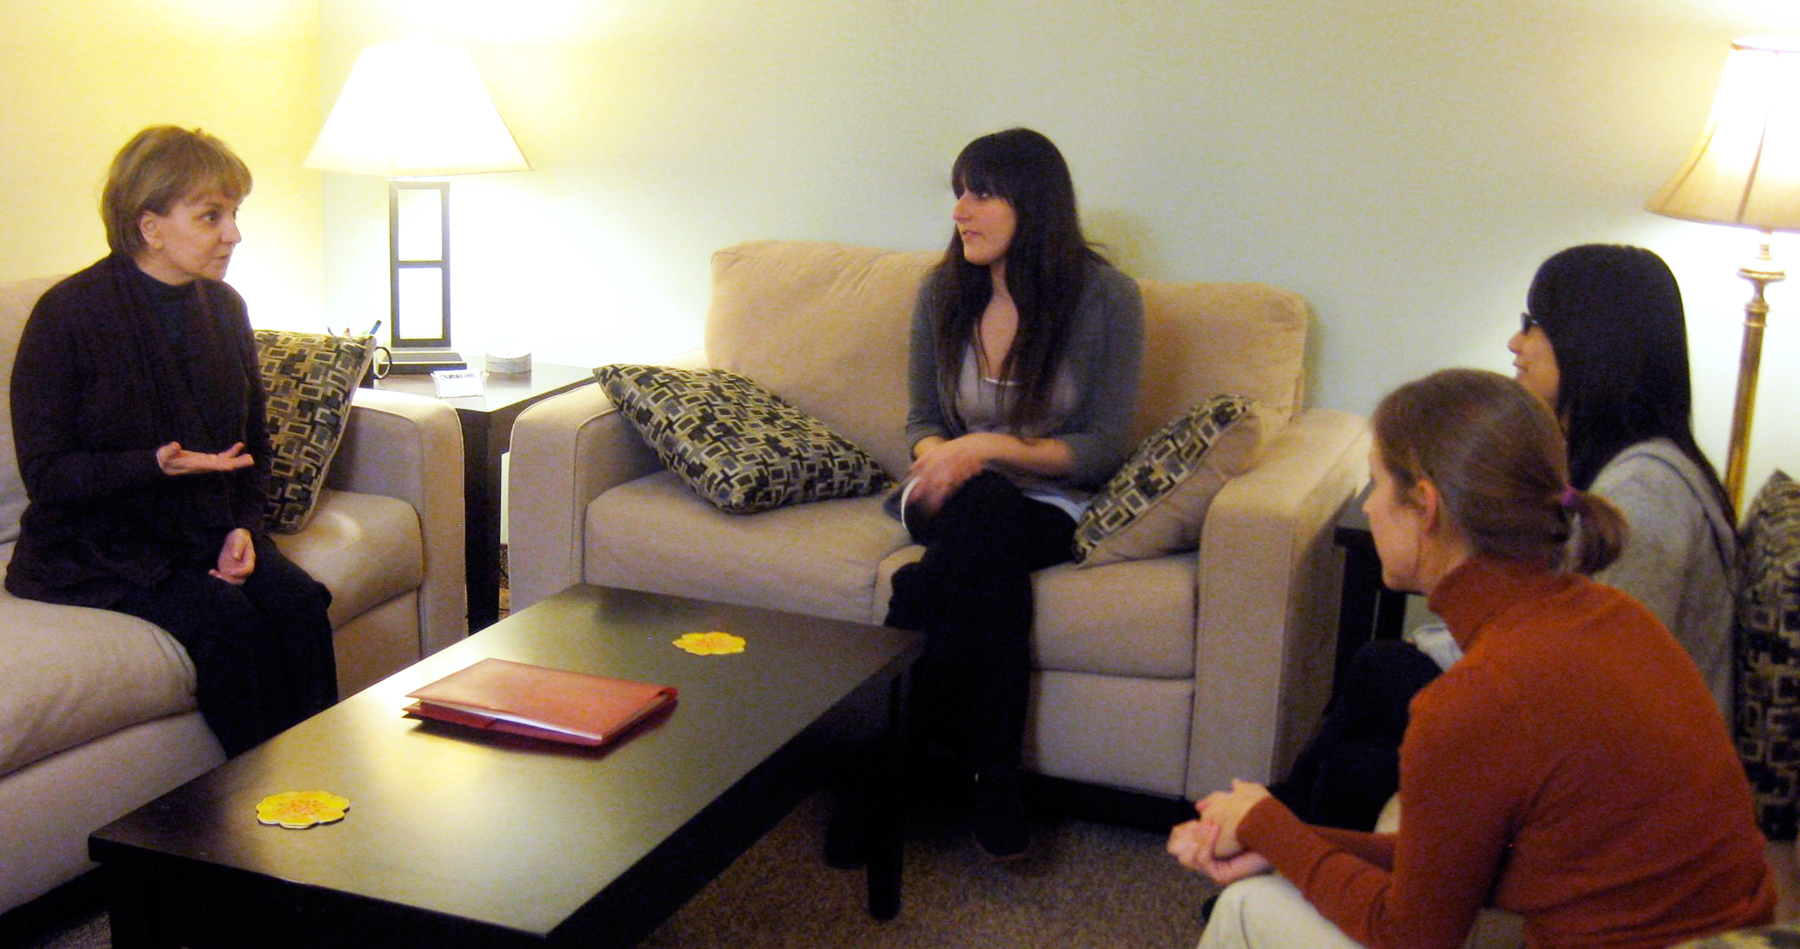 Therapist and three women in a warm and comfortable room with lamps, couches and coffee table